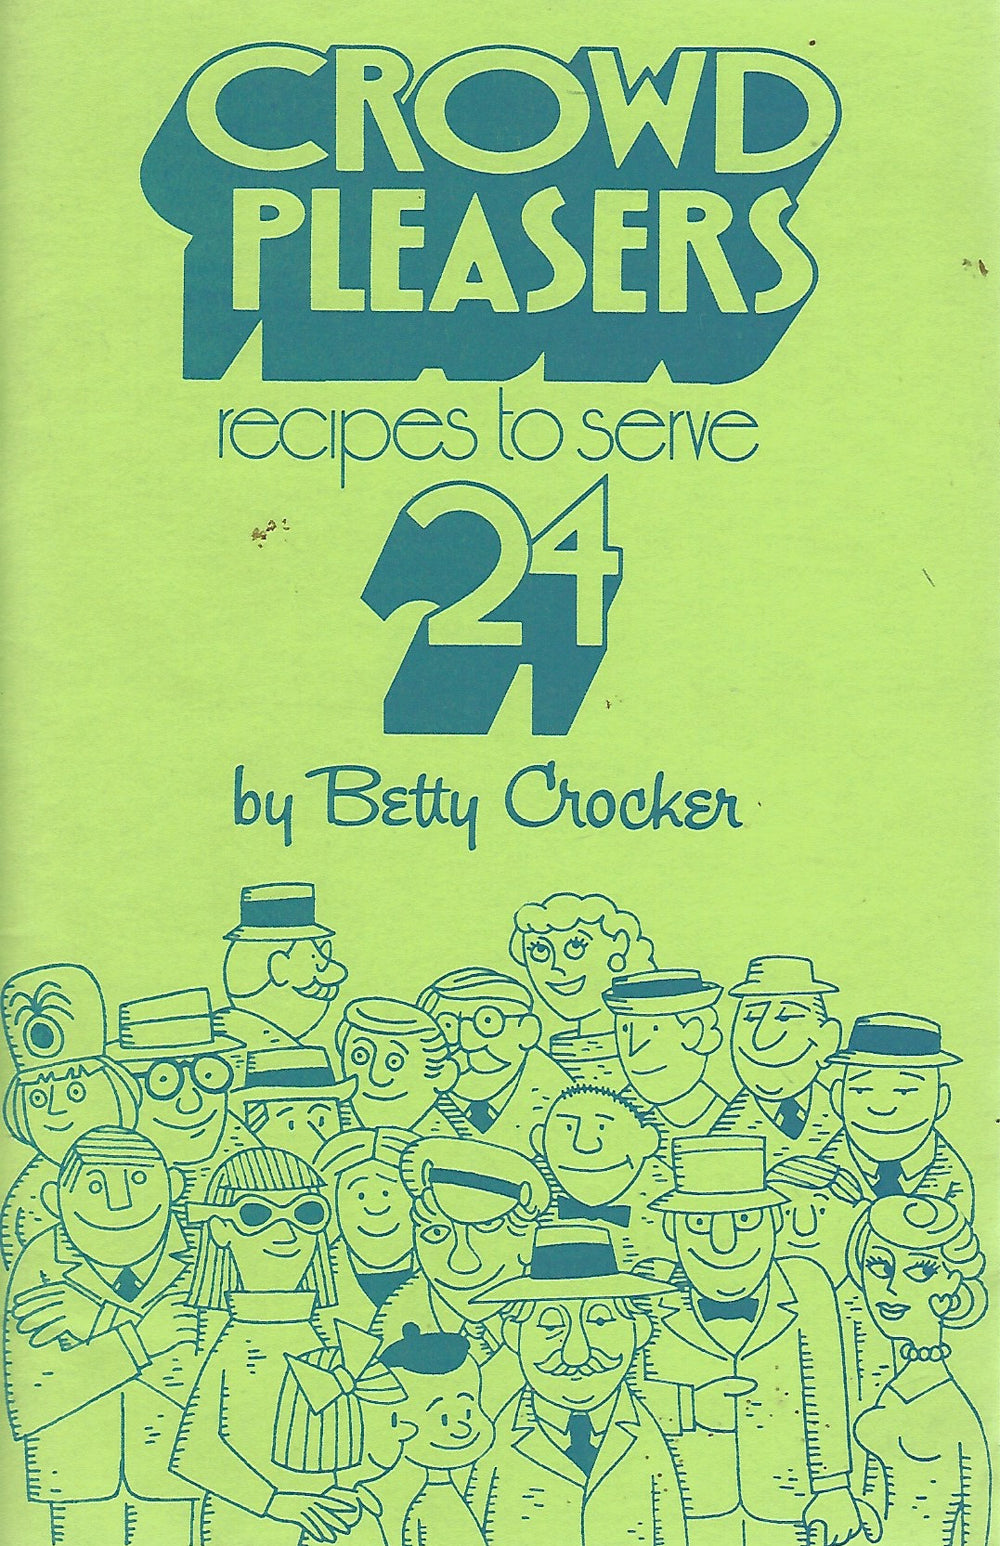 Crowd Pleasers:  24 Recipes to serve by Betty Crocker (RARE)  (1971)